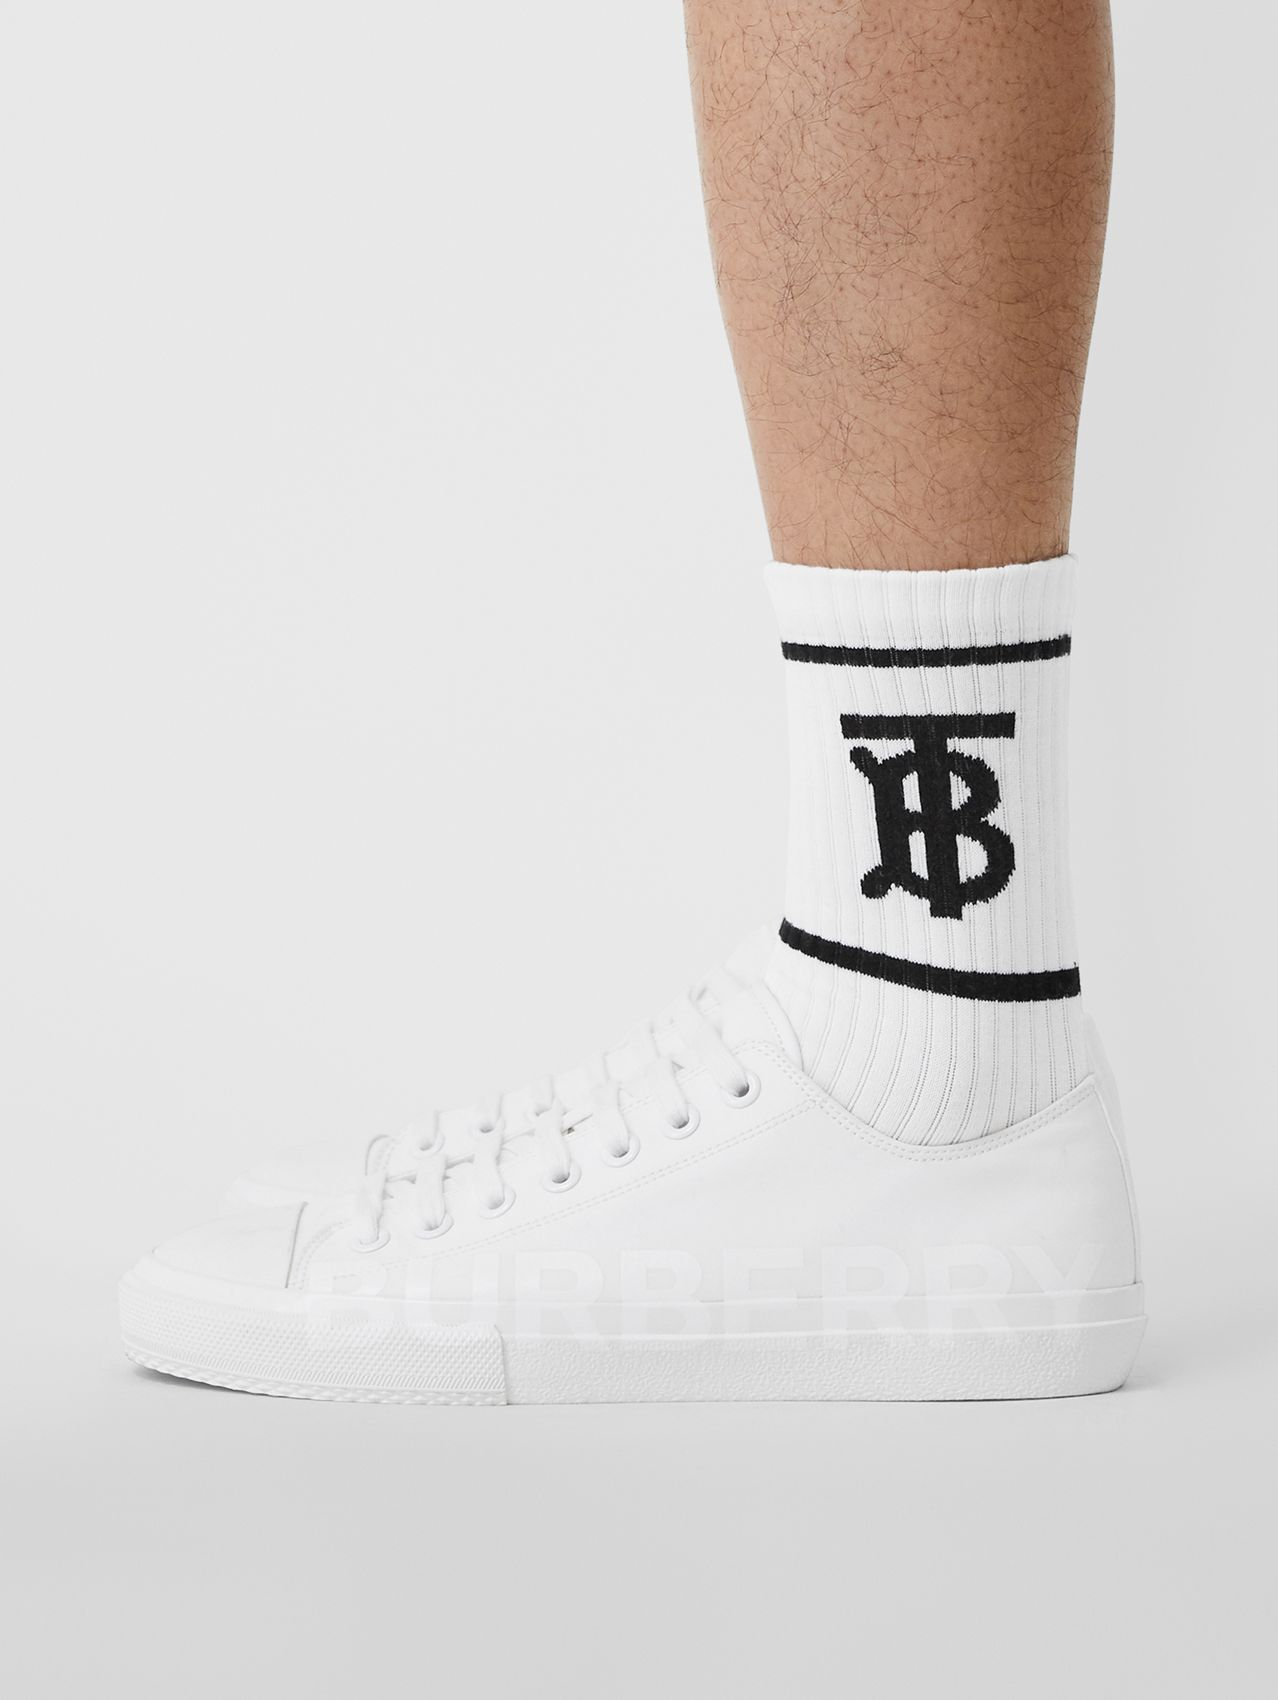 Monogram Motif Intarsia Socks in White